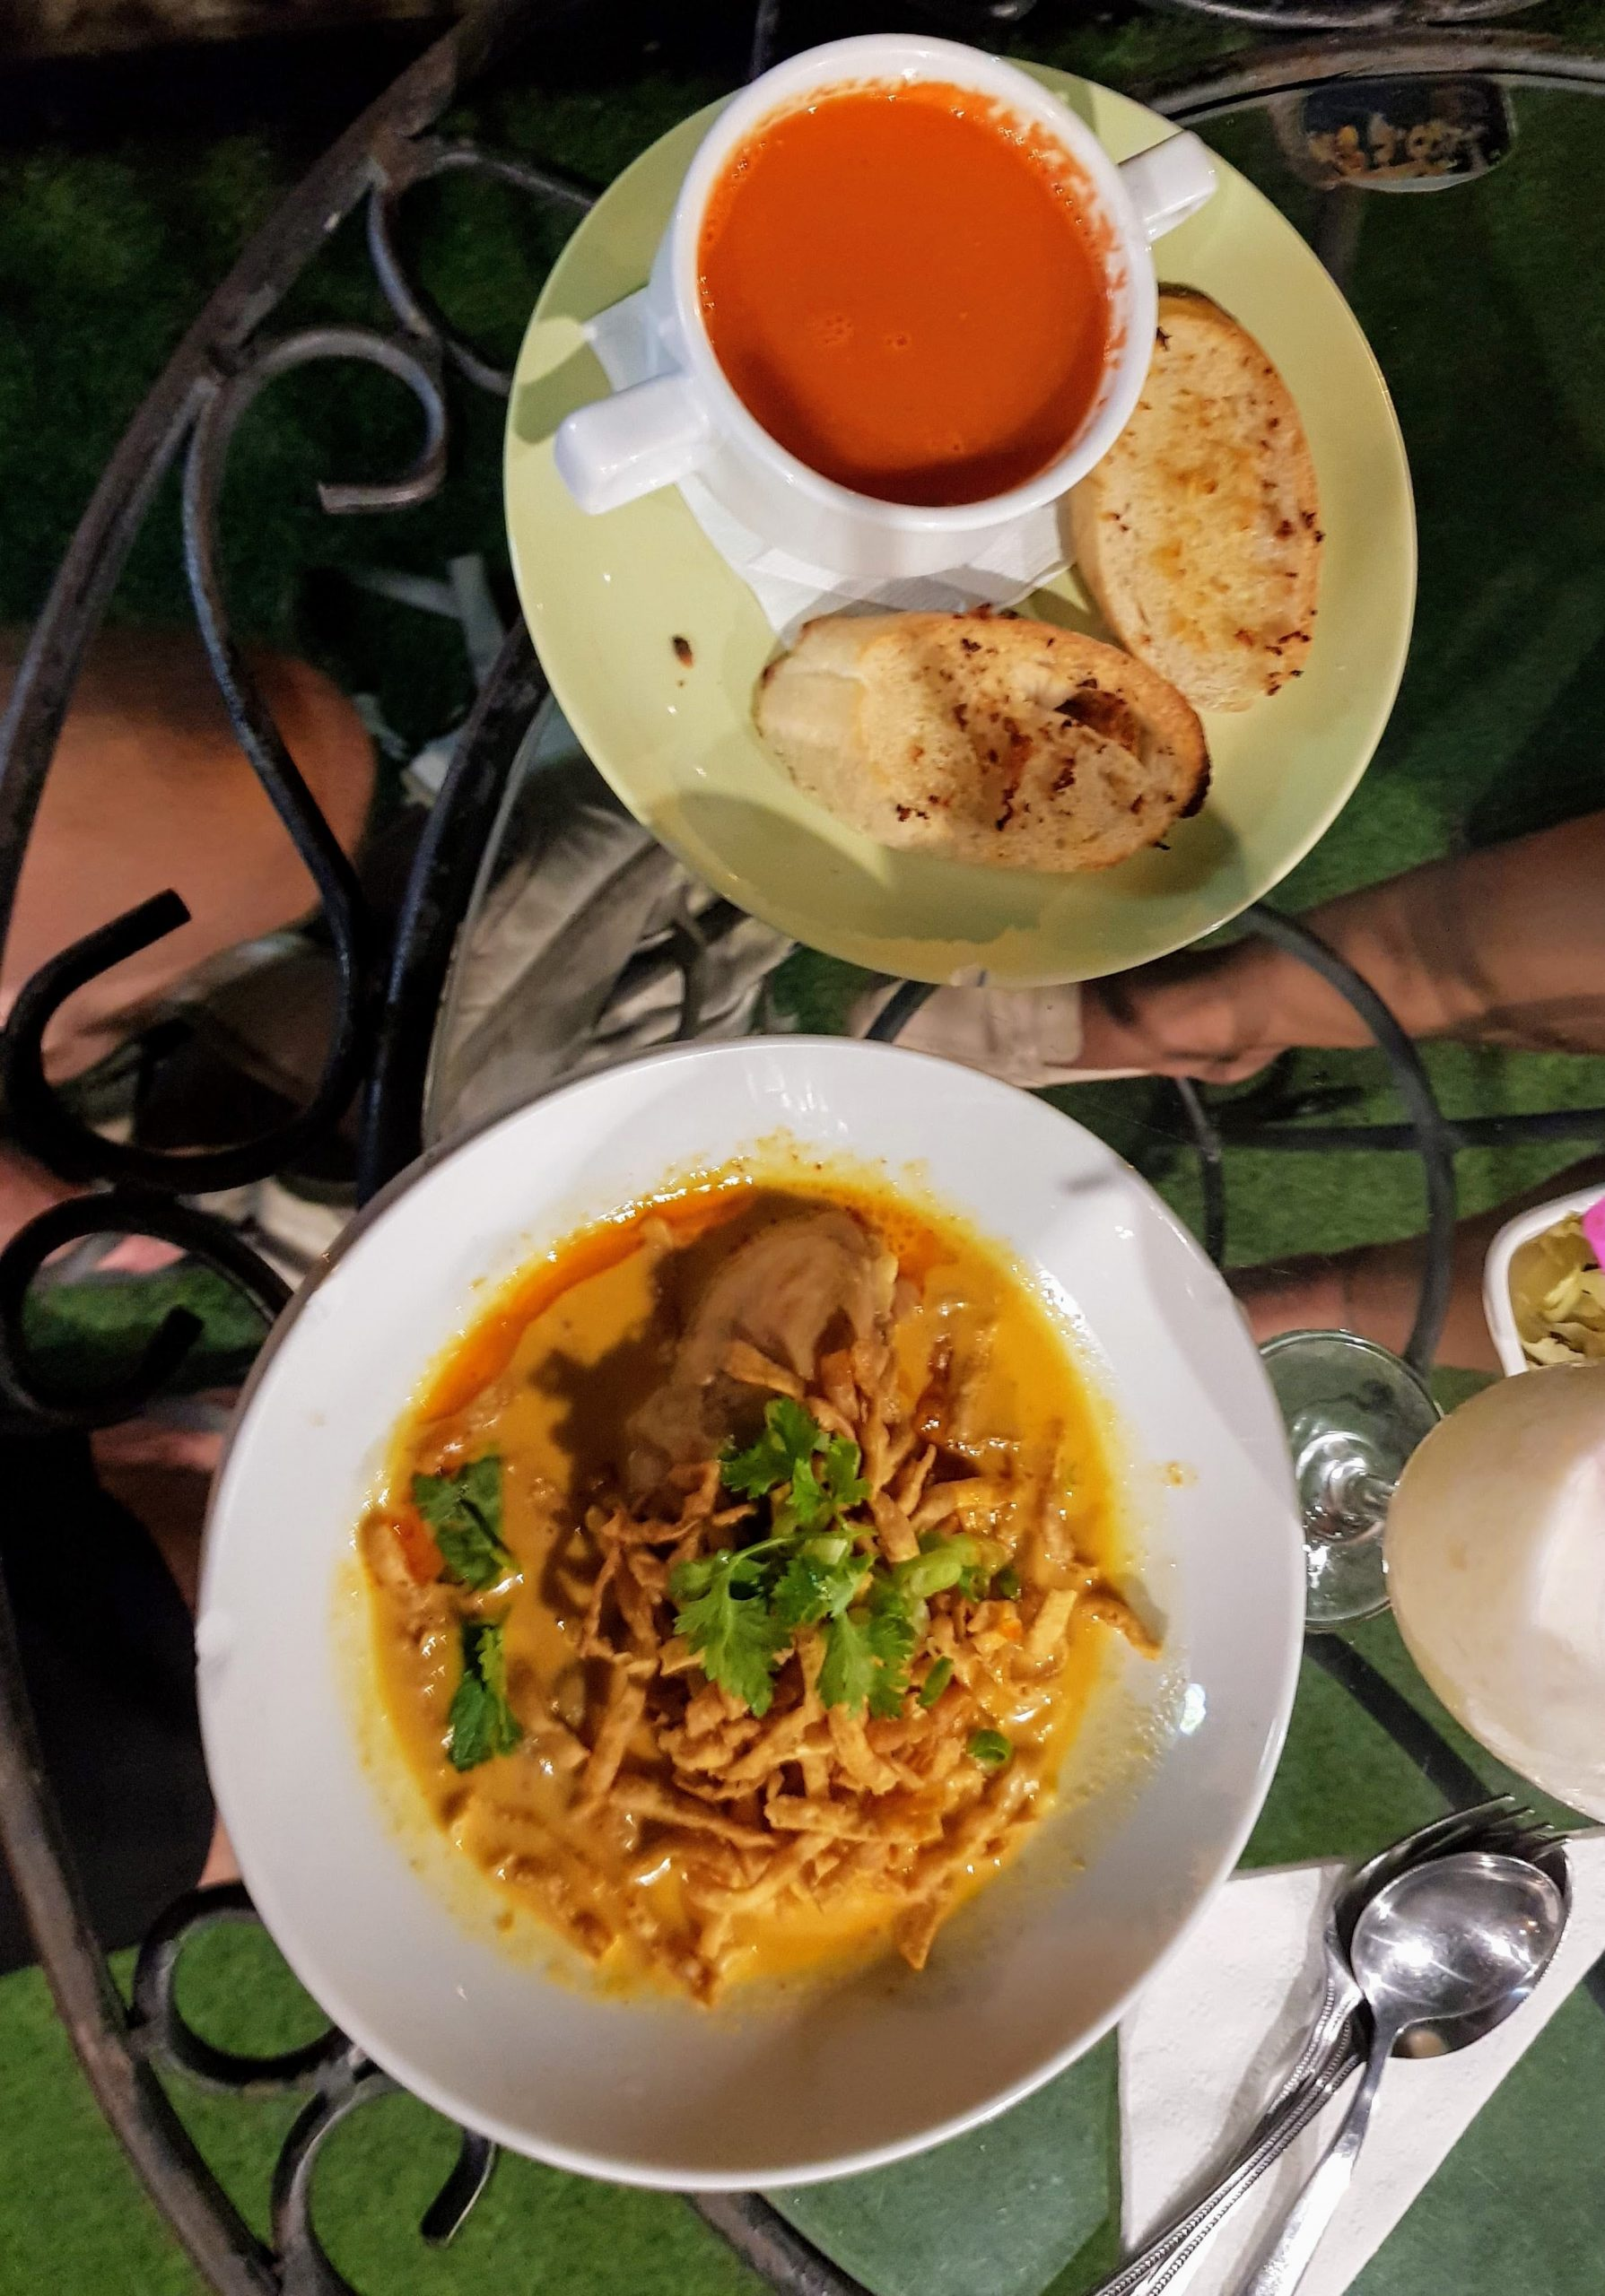 khao soi and tomato soup at Loi Kroh Road